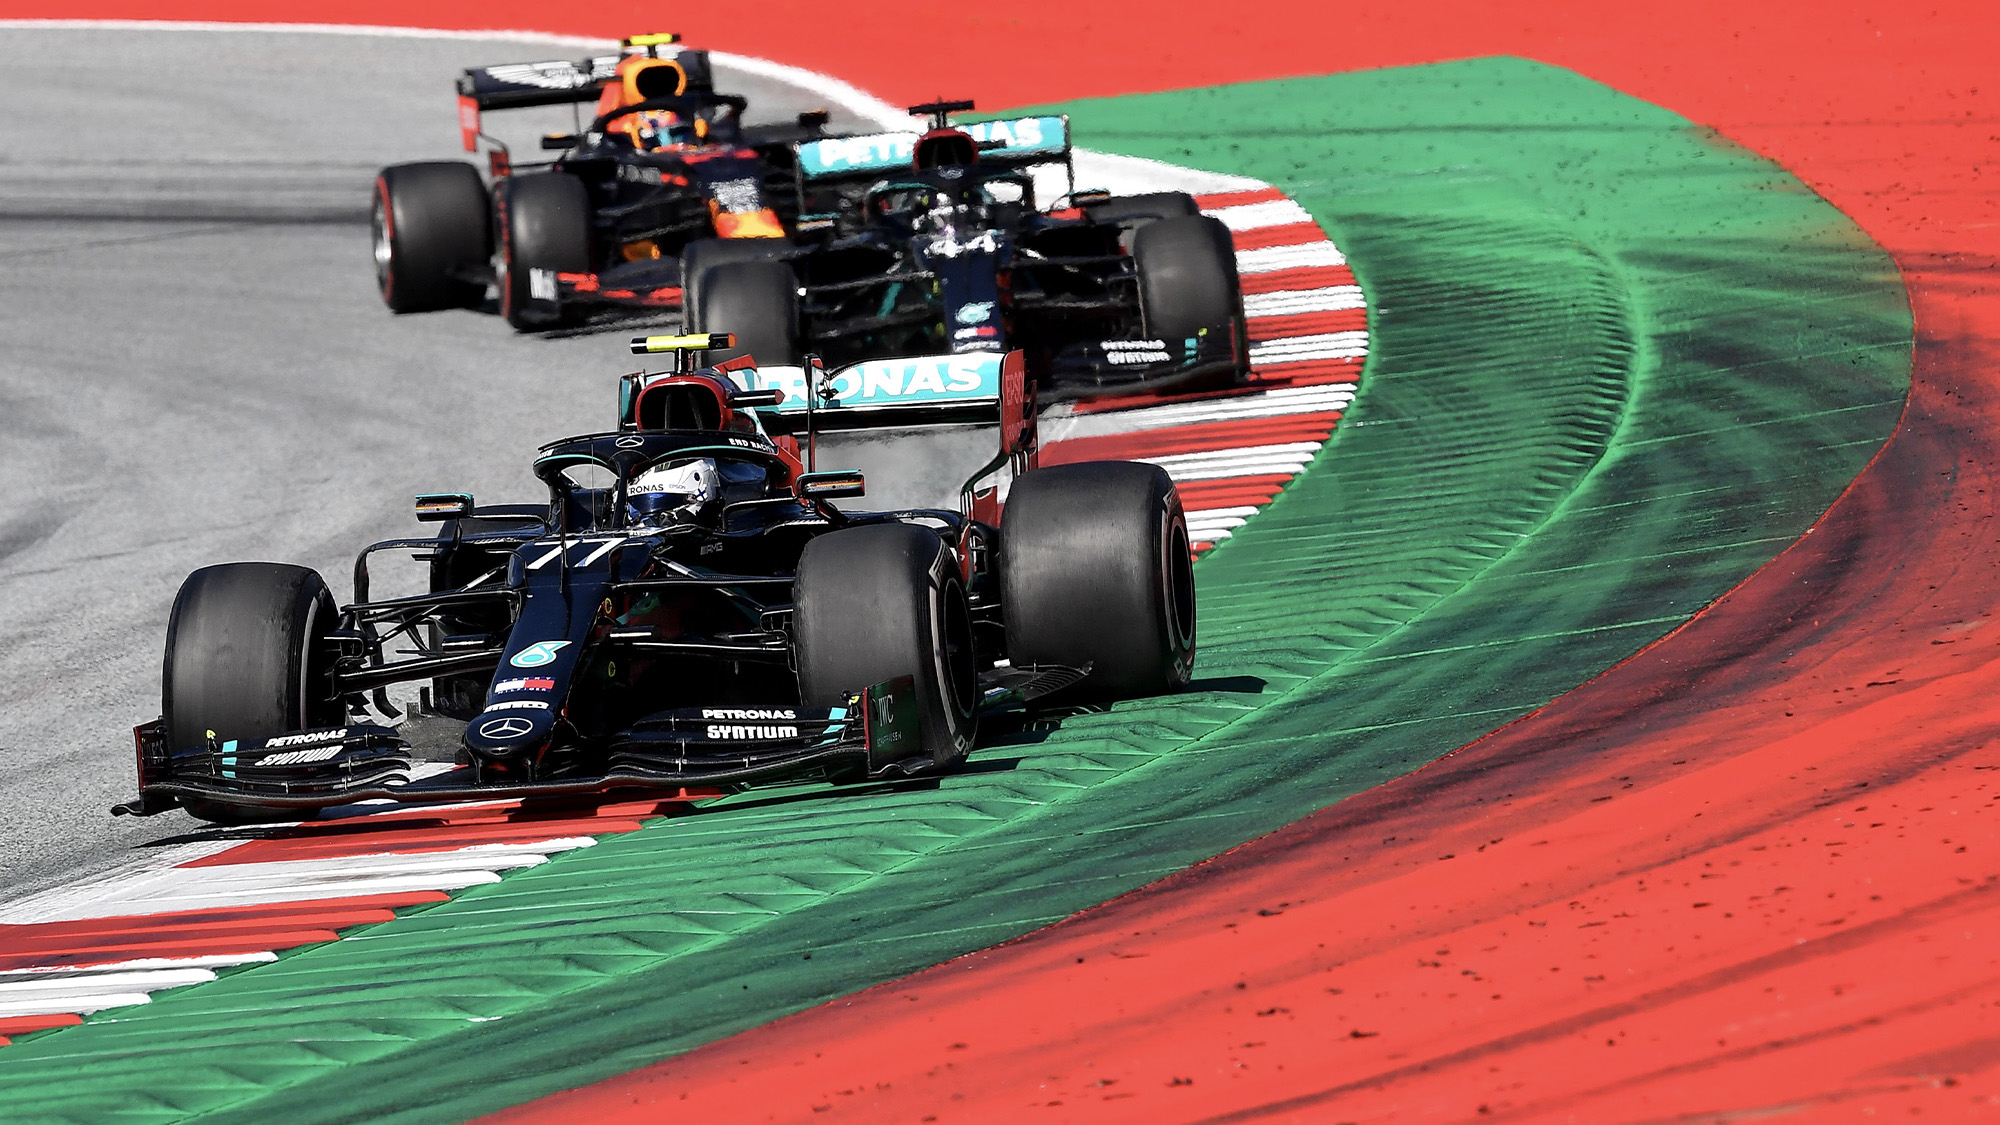 Valtteri Bottas leads Lewis Hamilton and ALex Albon in the 2020 F1 Austrian Grand Prix